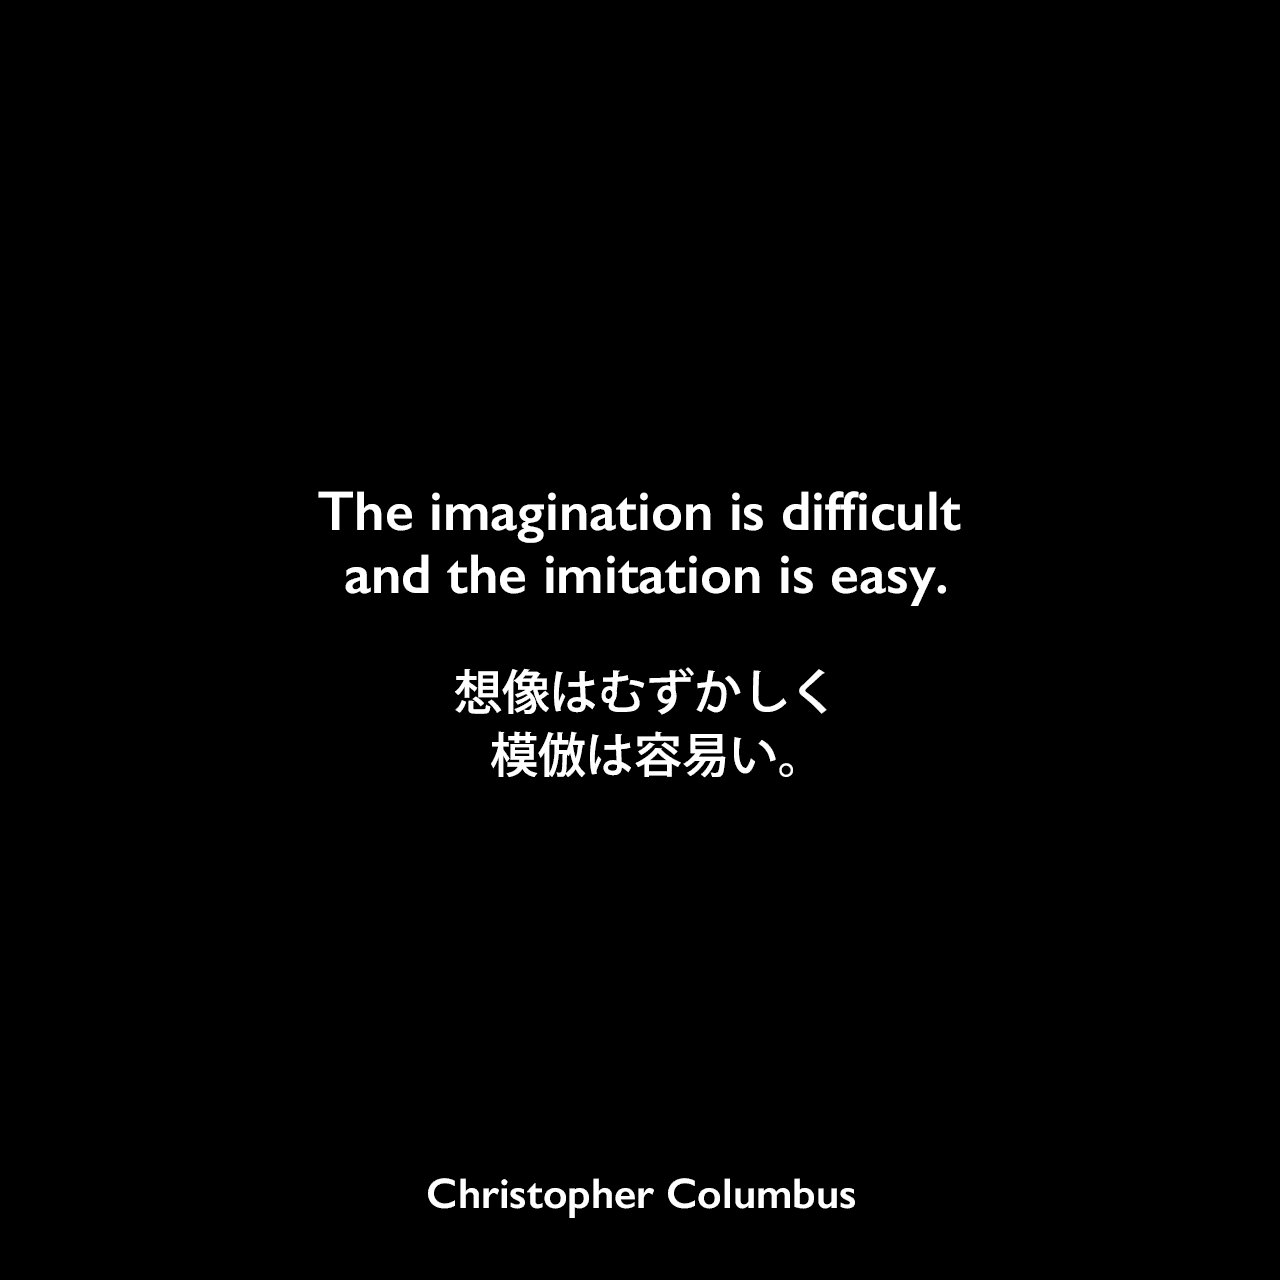 The imagination is difficult and the imitation is easy.想像はむずかしく、模倣は容易い。Christopher Columbus